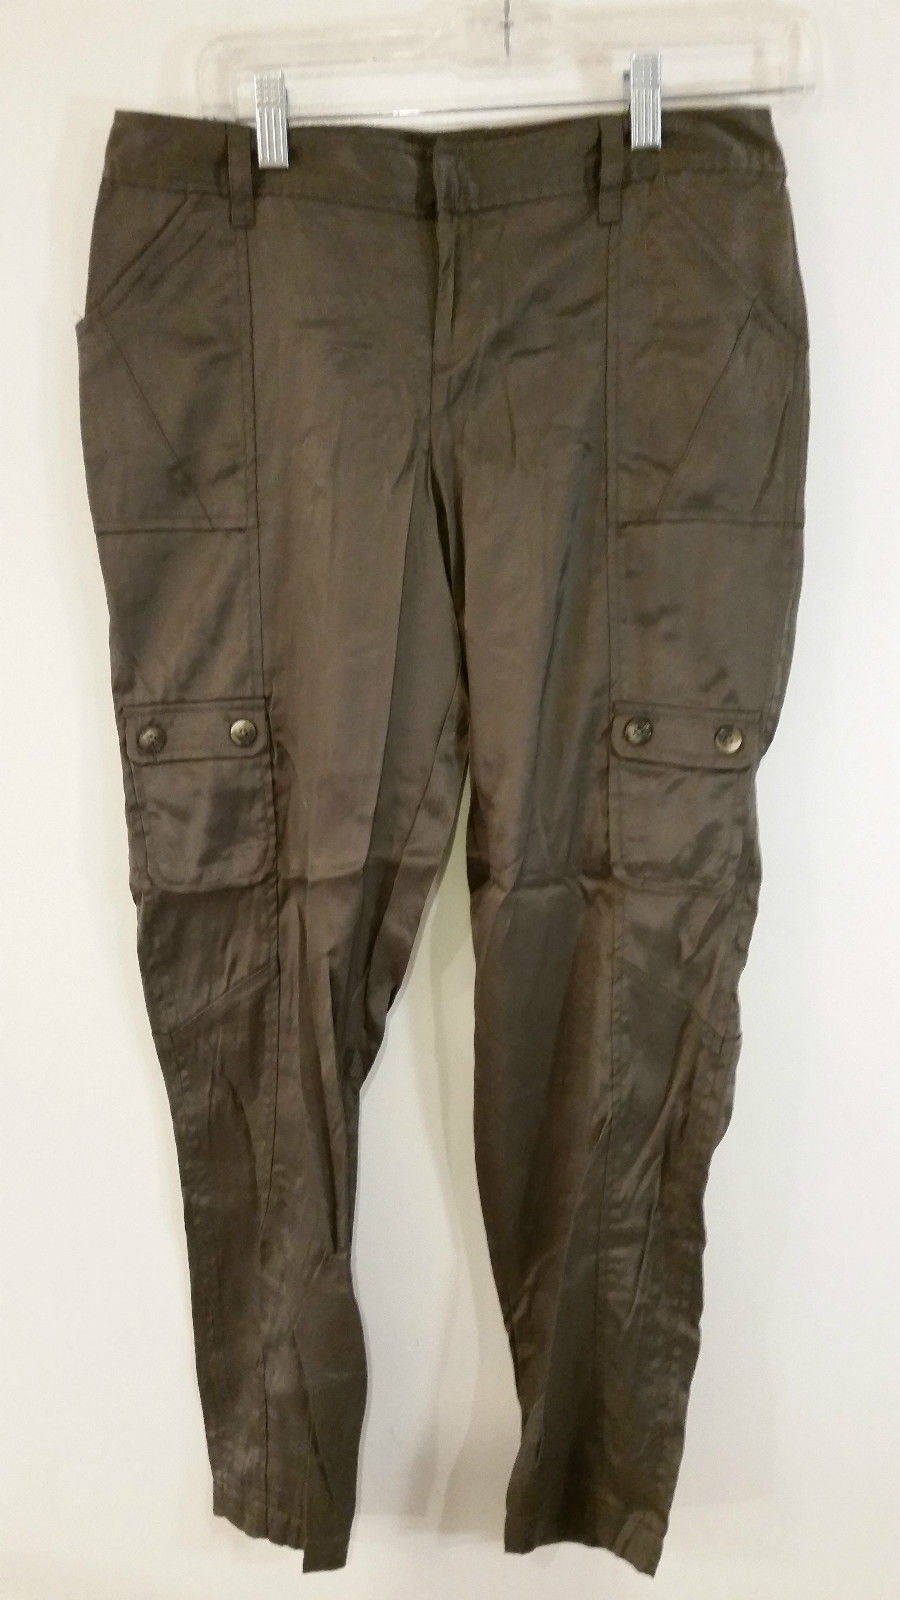 Simply Vera Vera Wong Size 6P Brown Cargo Type Pants Four Pants Pockets